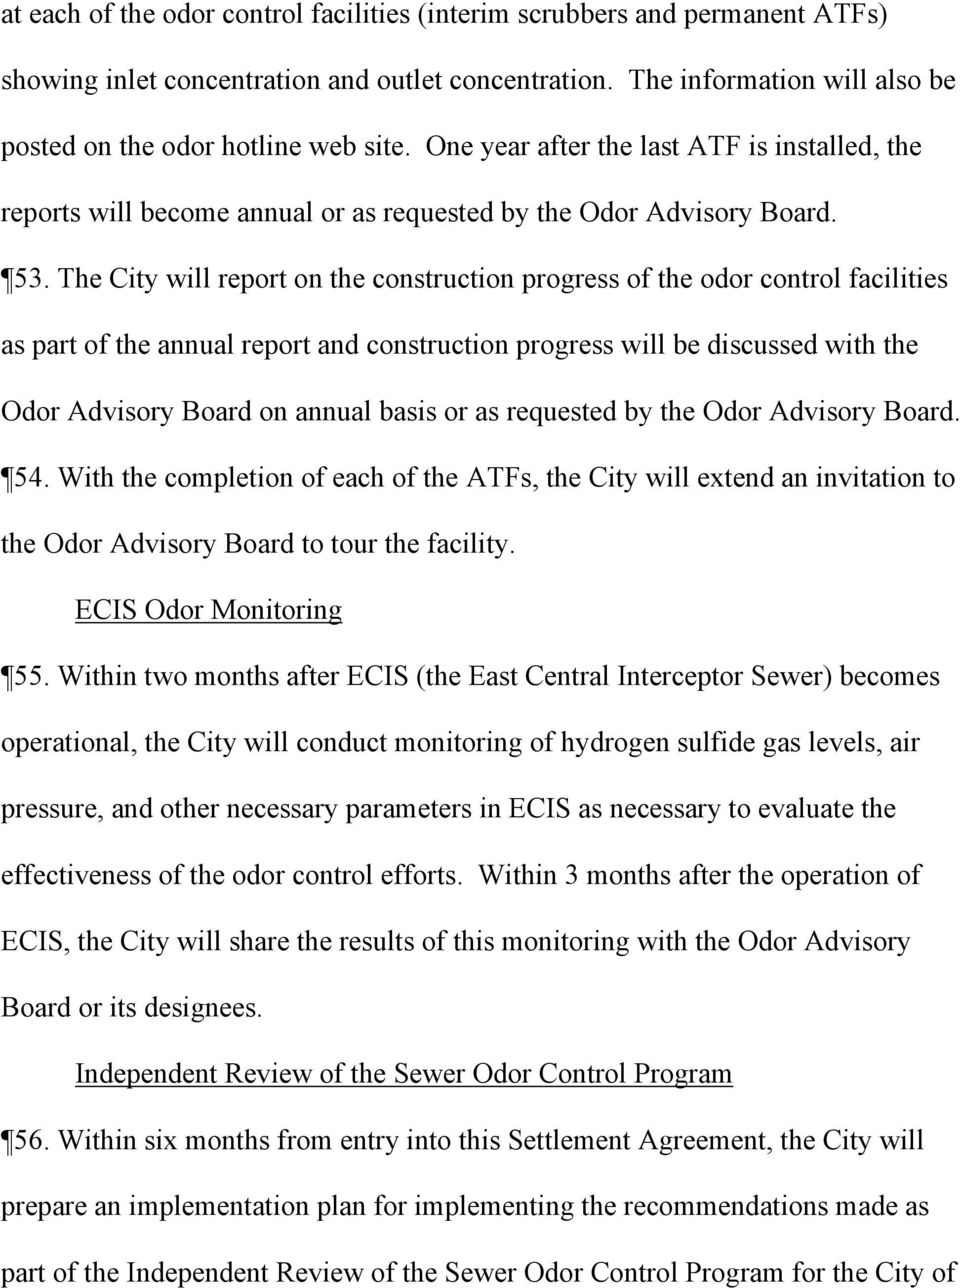 The City will report on the construction progress of the odor control facilities as part of the annual report and construction progress will be discussed with the Odor Advisory Board on annual basis